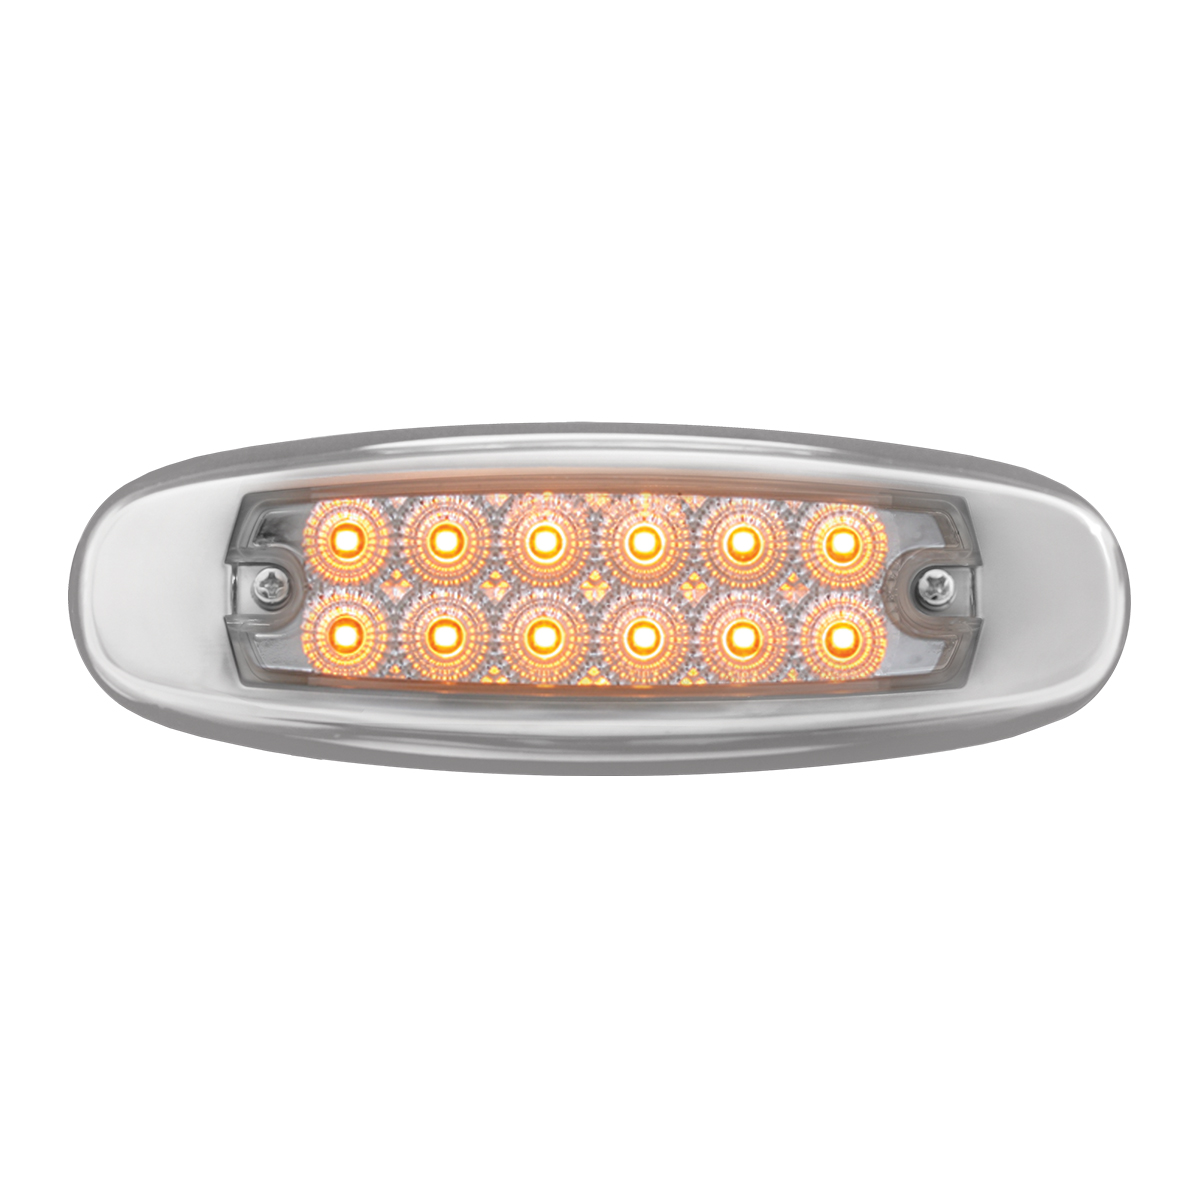 78566 Ultra Thin Spyder LED Marker Light w/ Stainless Steel Bezel